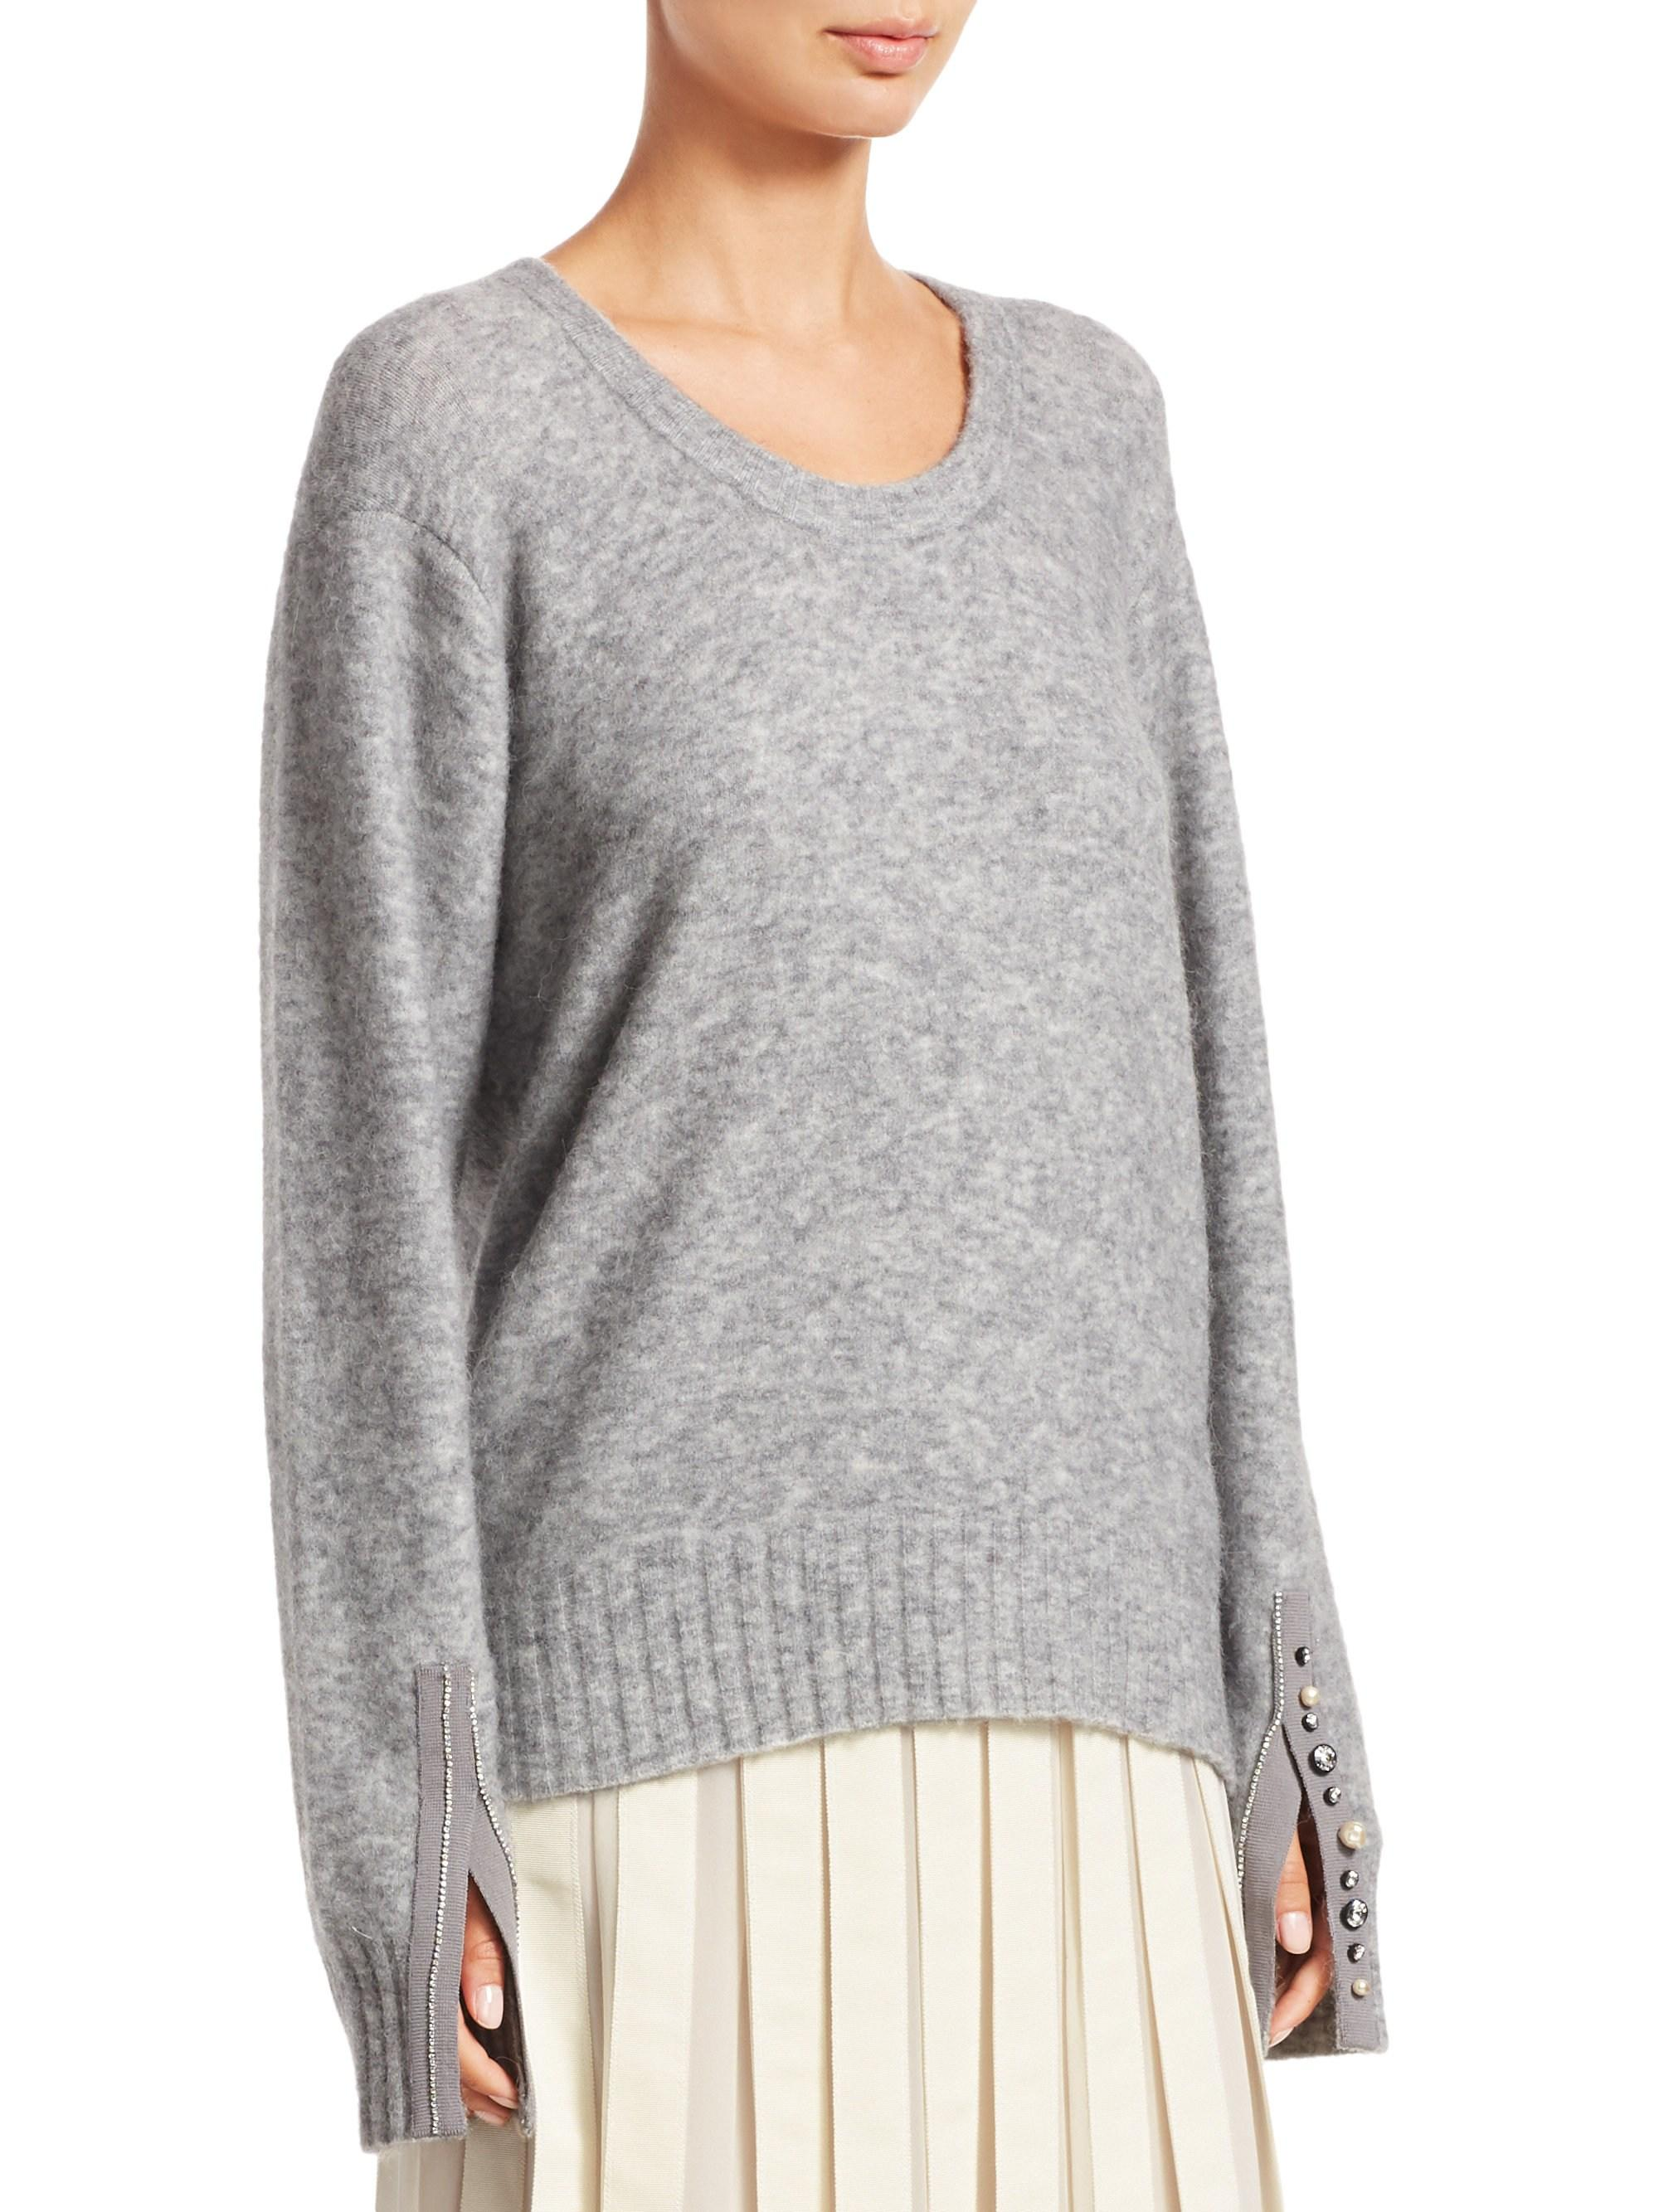 3.1 Phillip Lim - Gray Embellished Split-cuff Roundneck Alpaca Sweater -  Lyst. View fullscreen a0584a8bb